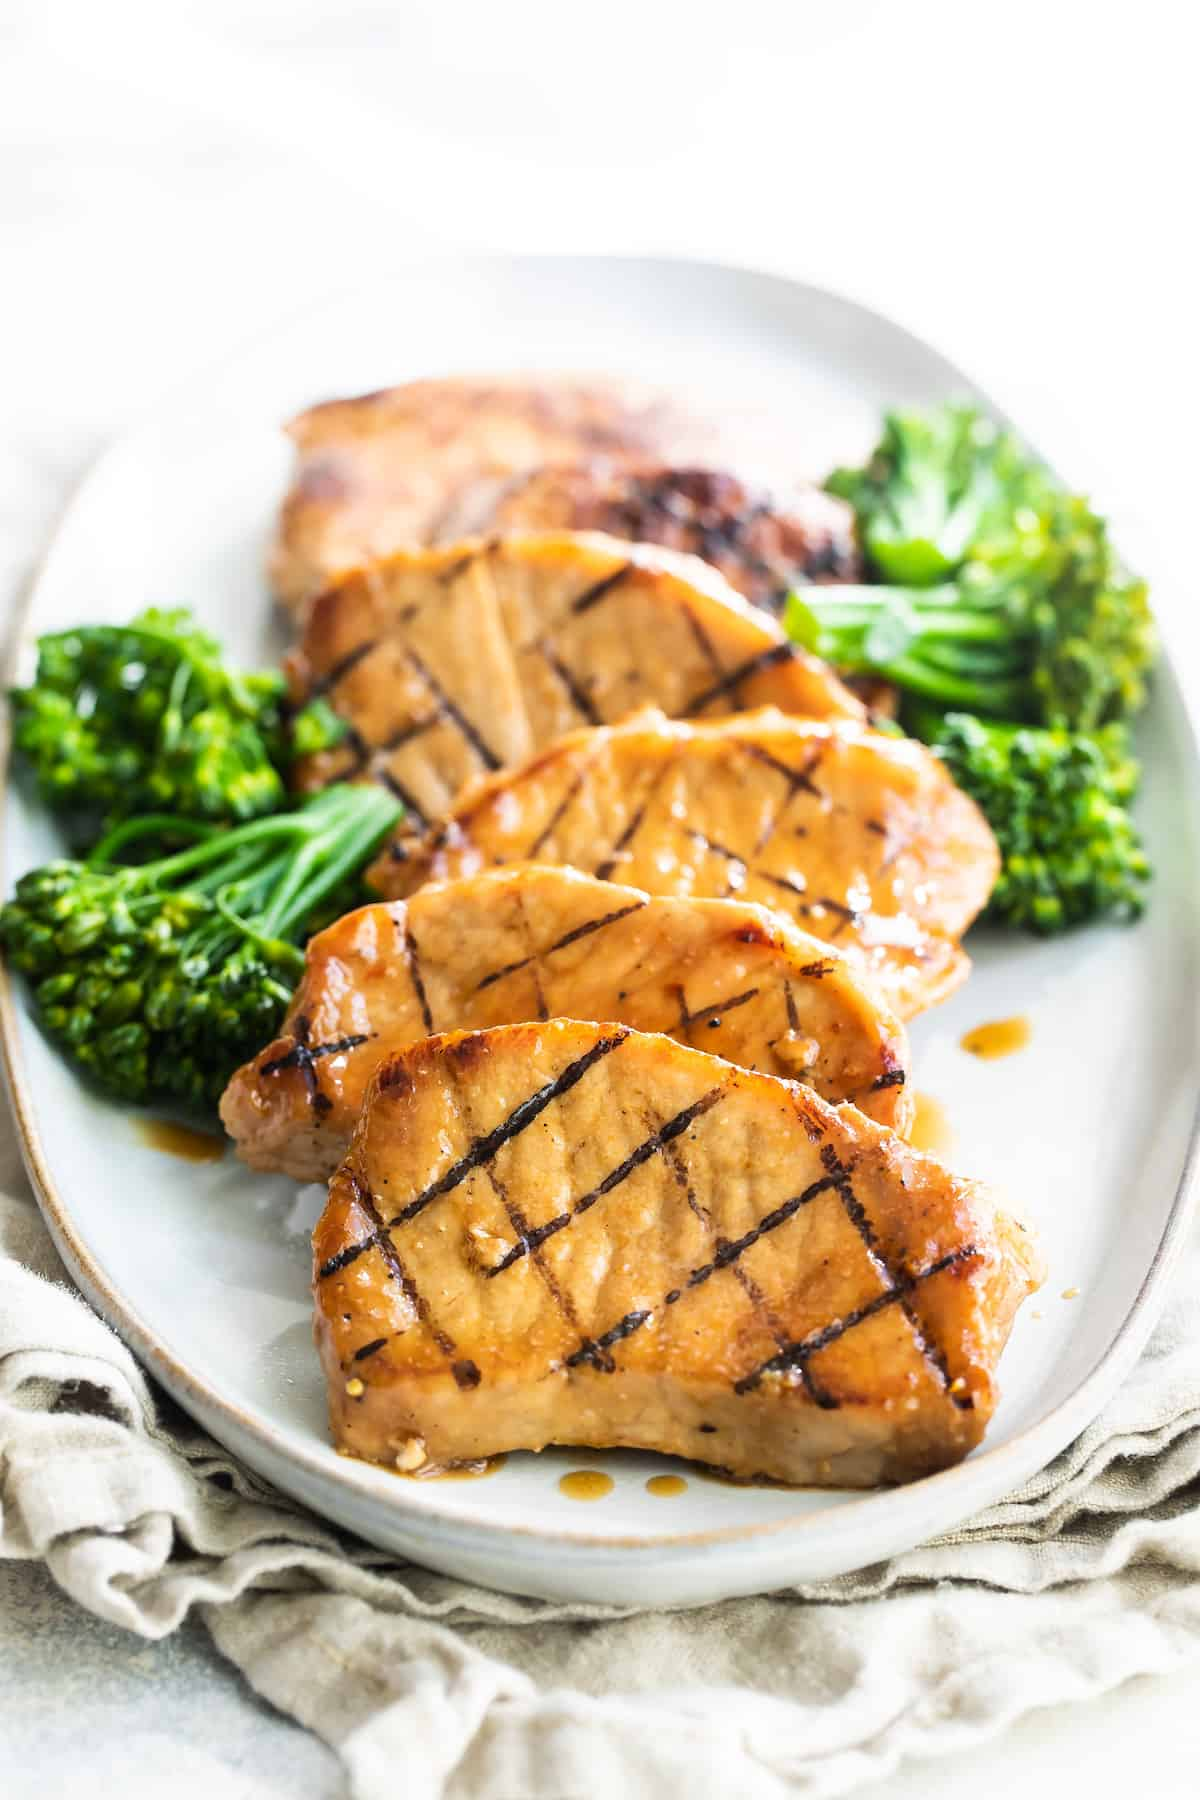 Six Honey Soy Pork Chops on a Plate with Broccoli on the Side